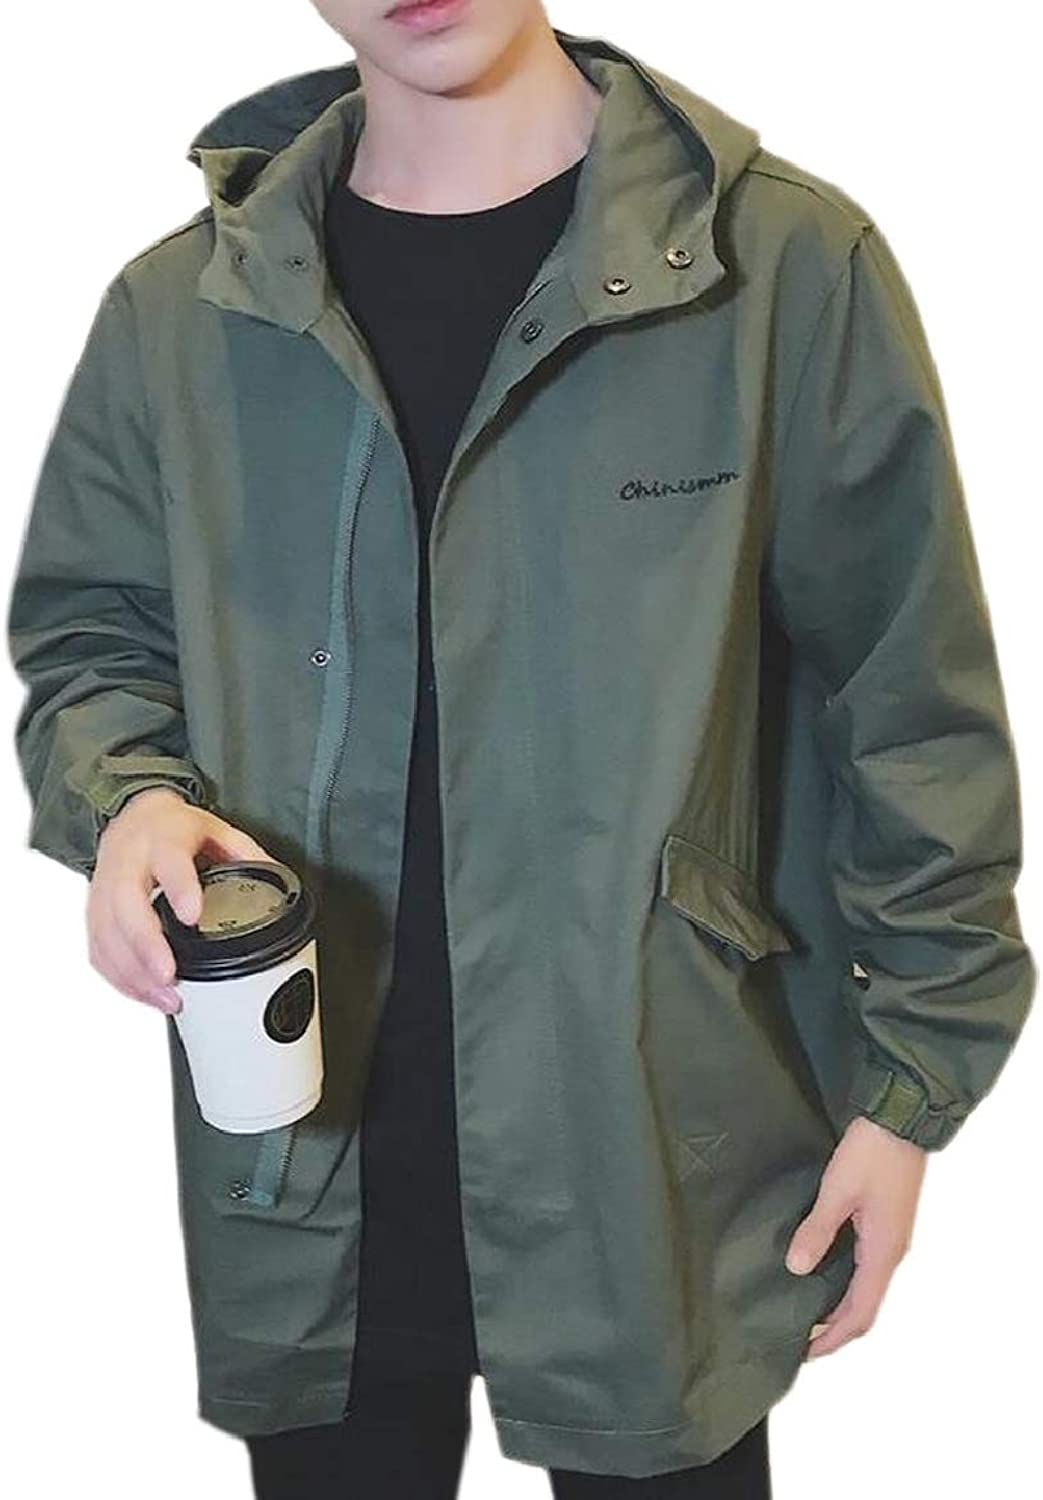 8b7ed64166 RG-CA RG-CA RG-CA Men's Plus-Size Jacket Coat Relaxed Trench Elong Zip-Up  Outerwear 62f14f